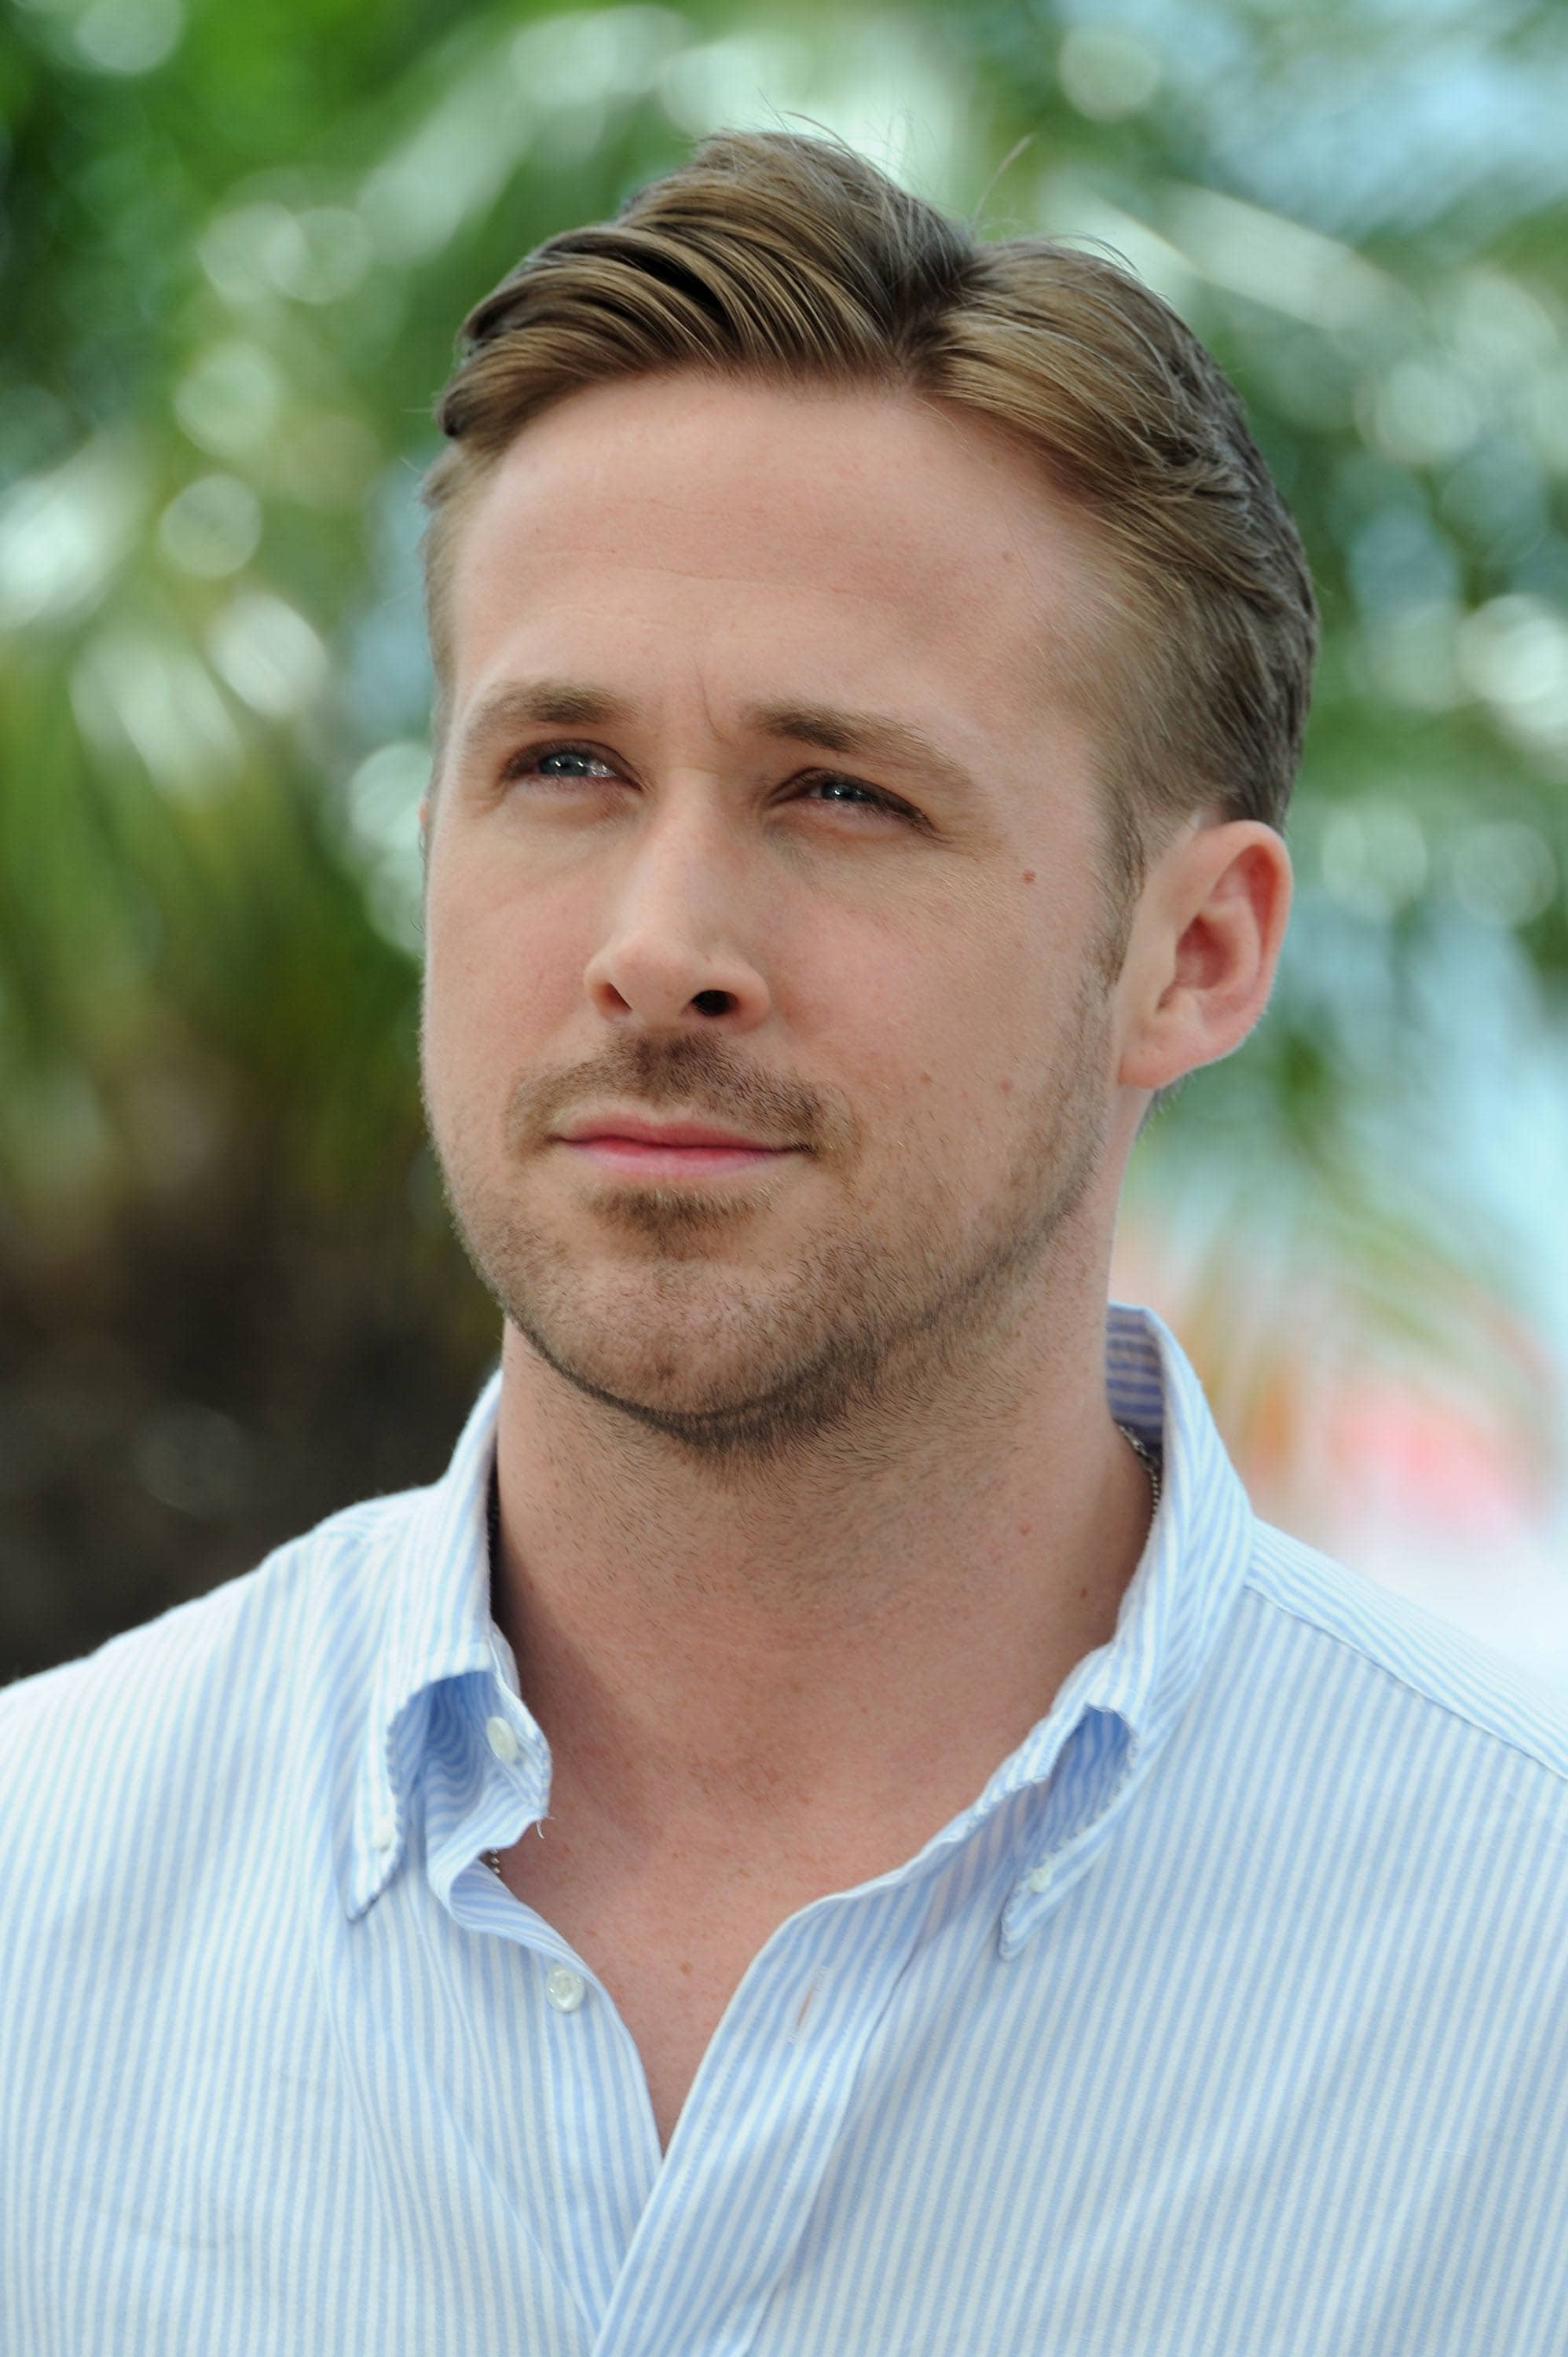 Ryan Gosling Haircut 9 Of His Best Looks To Copy 2019